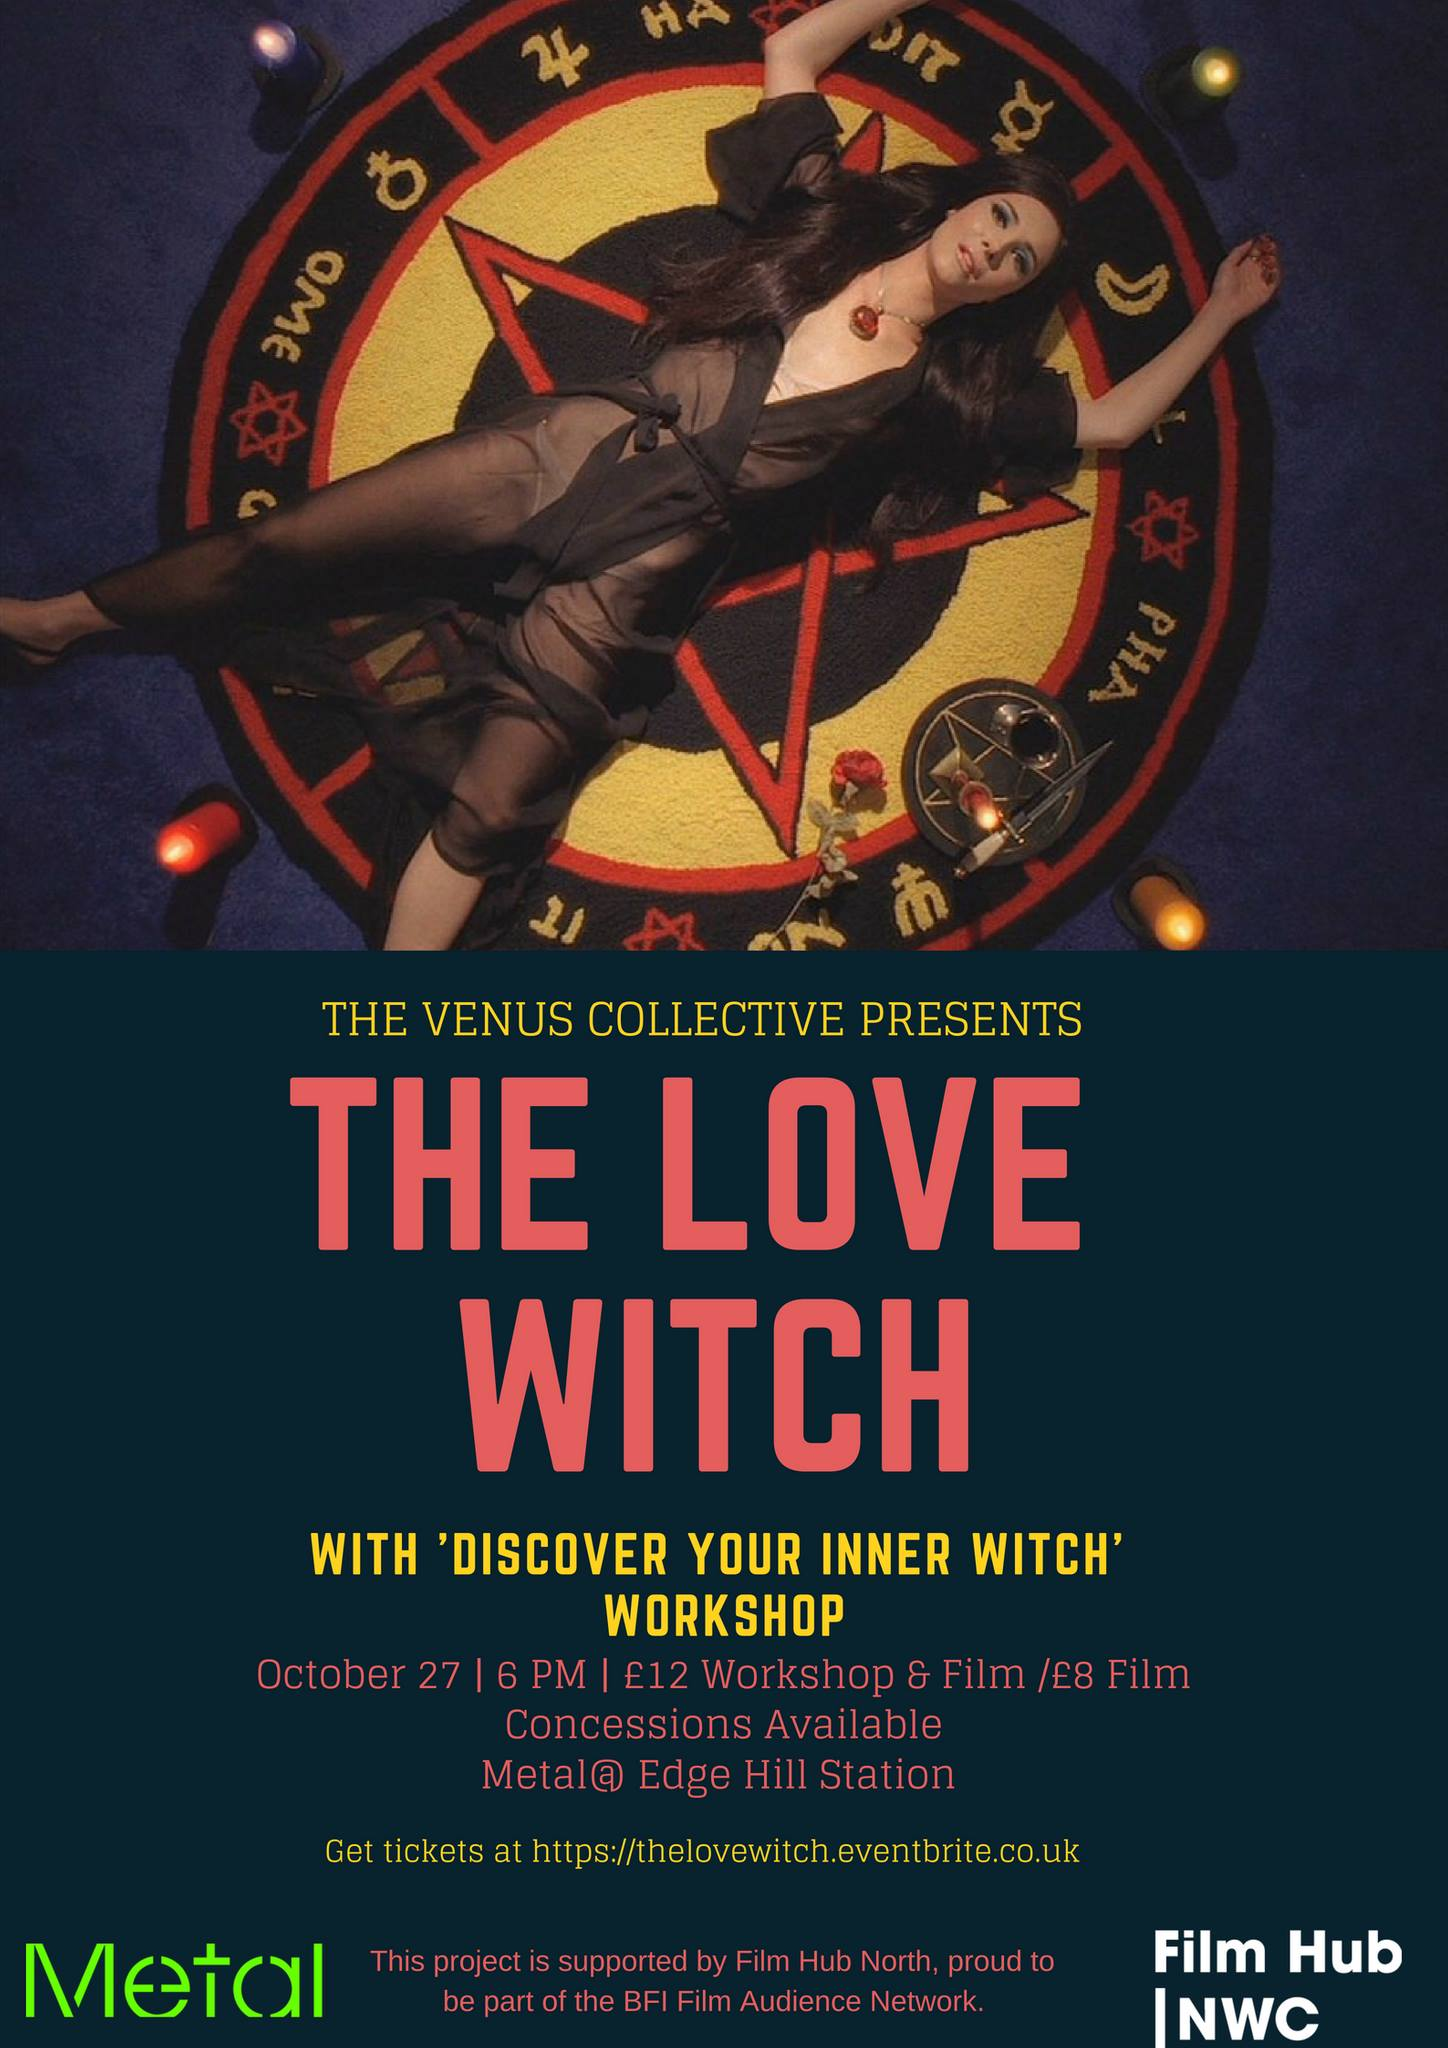 Metal: Screening - The Love Witch